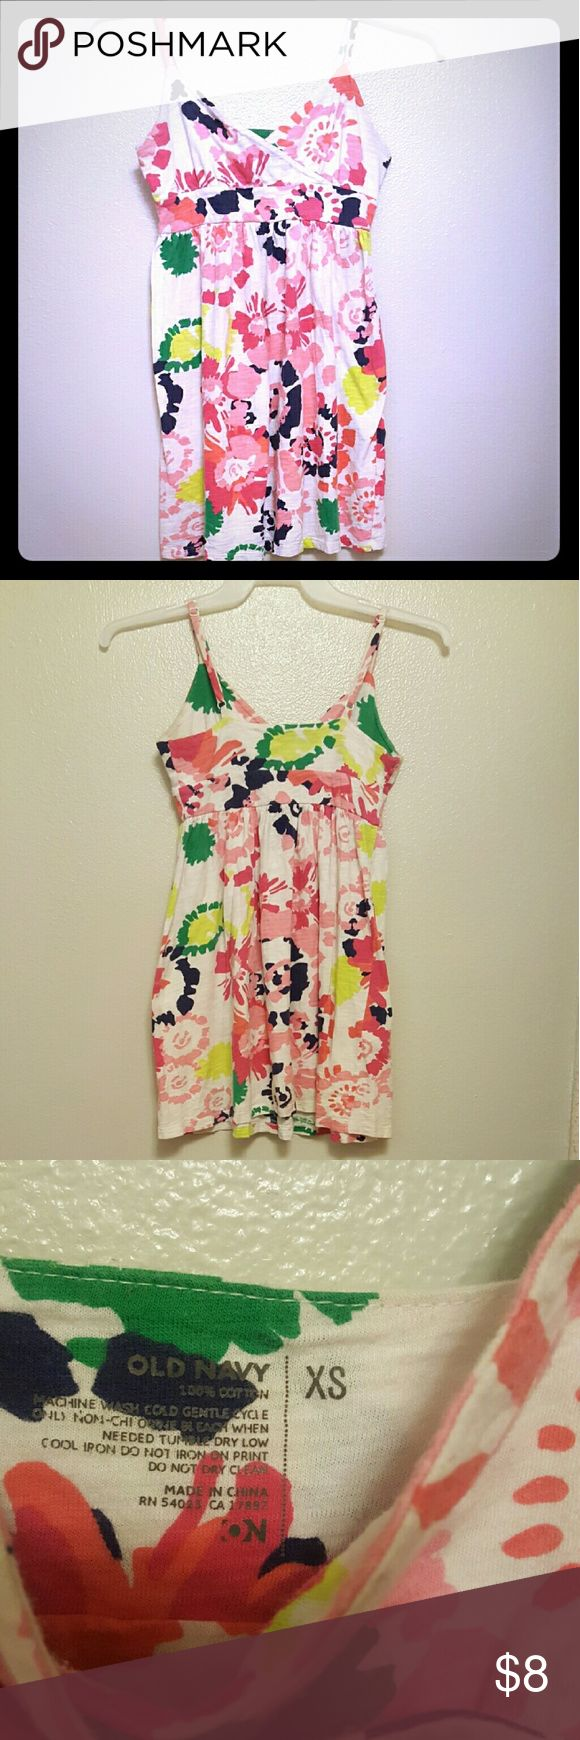 Old Navy floral sundress Adorable cotton sundress from old Navy. Worn several times because it is so comfortable to jus get up and go in! Getting too tight now. 😢 Old Navy Dresses Midi